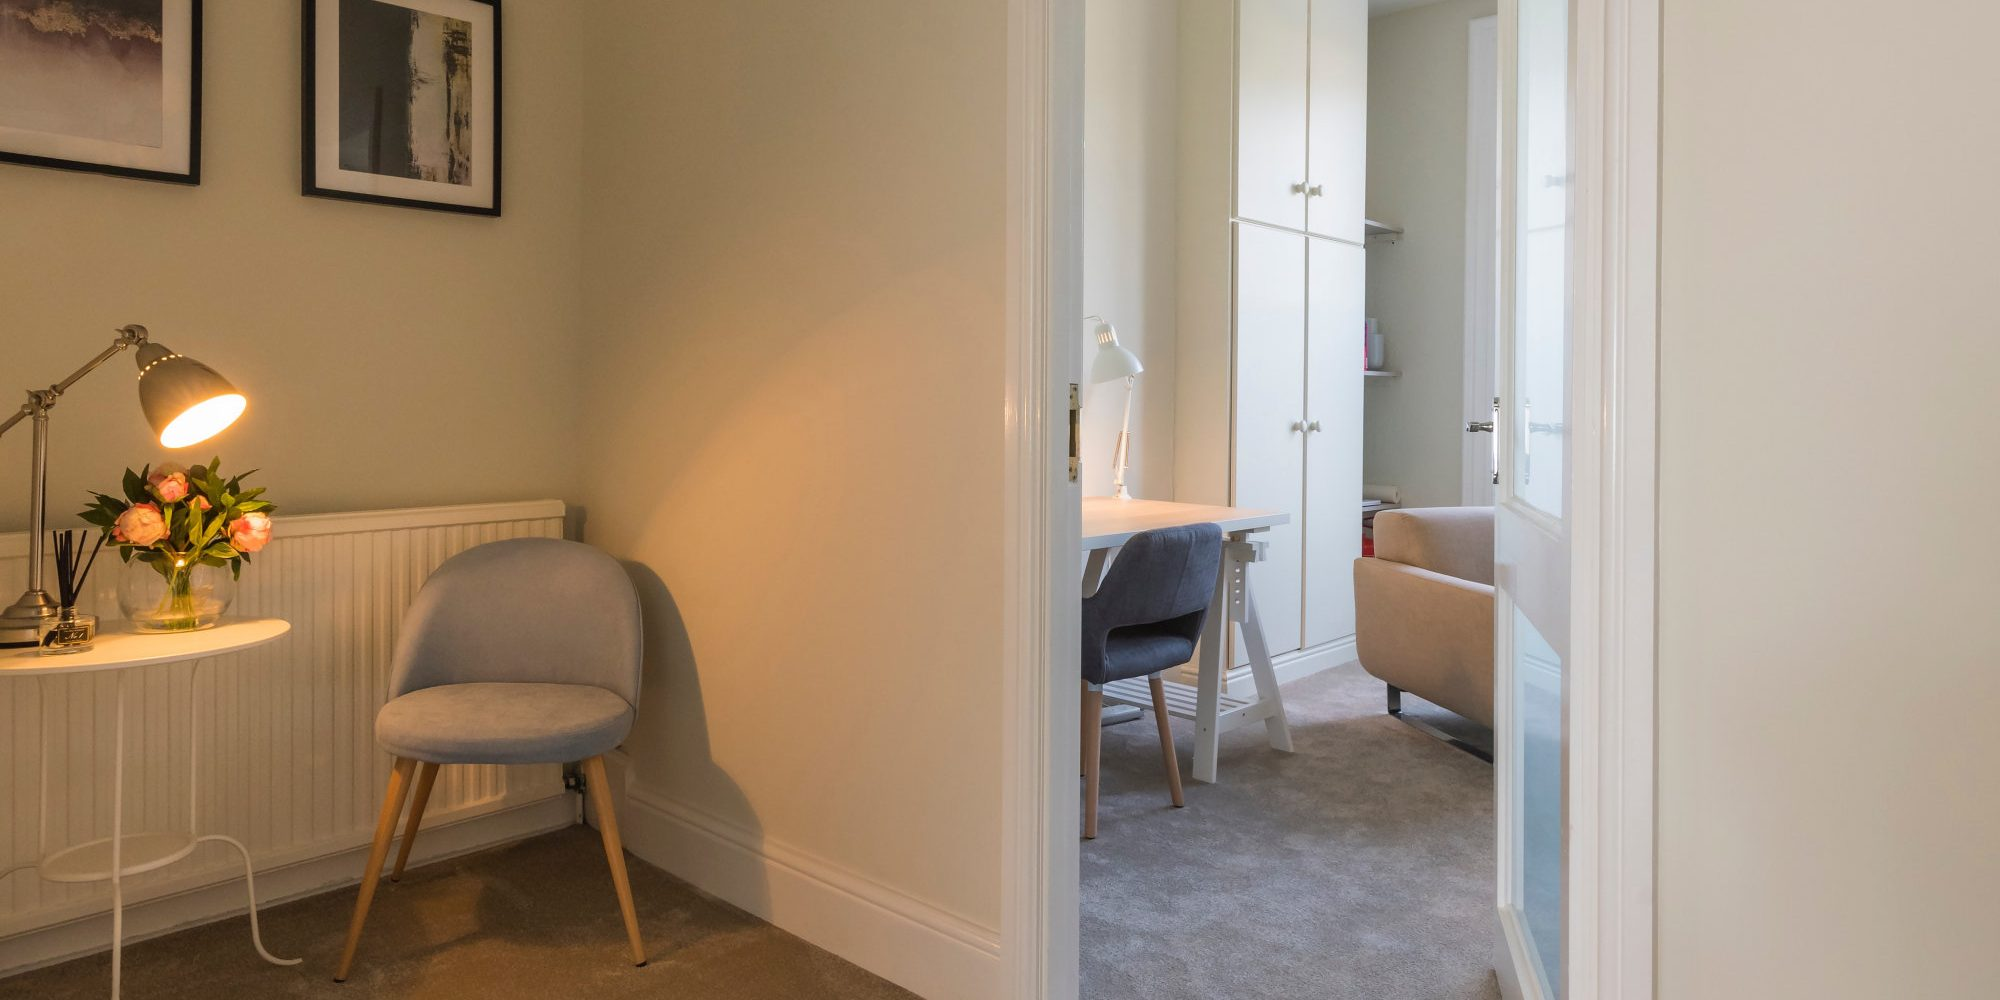 Inside the Grove therapy clinic in Ilkley